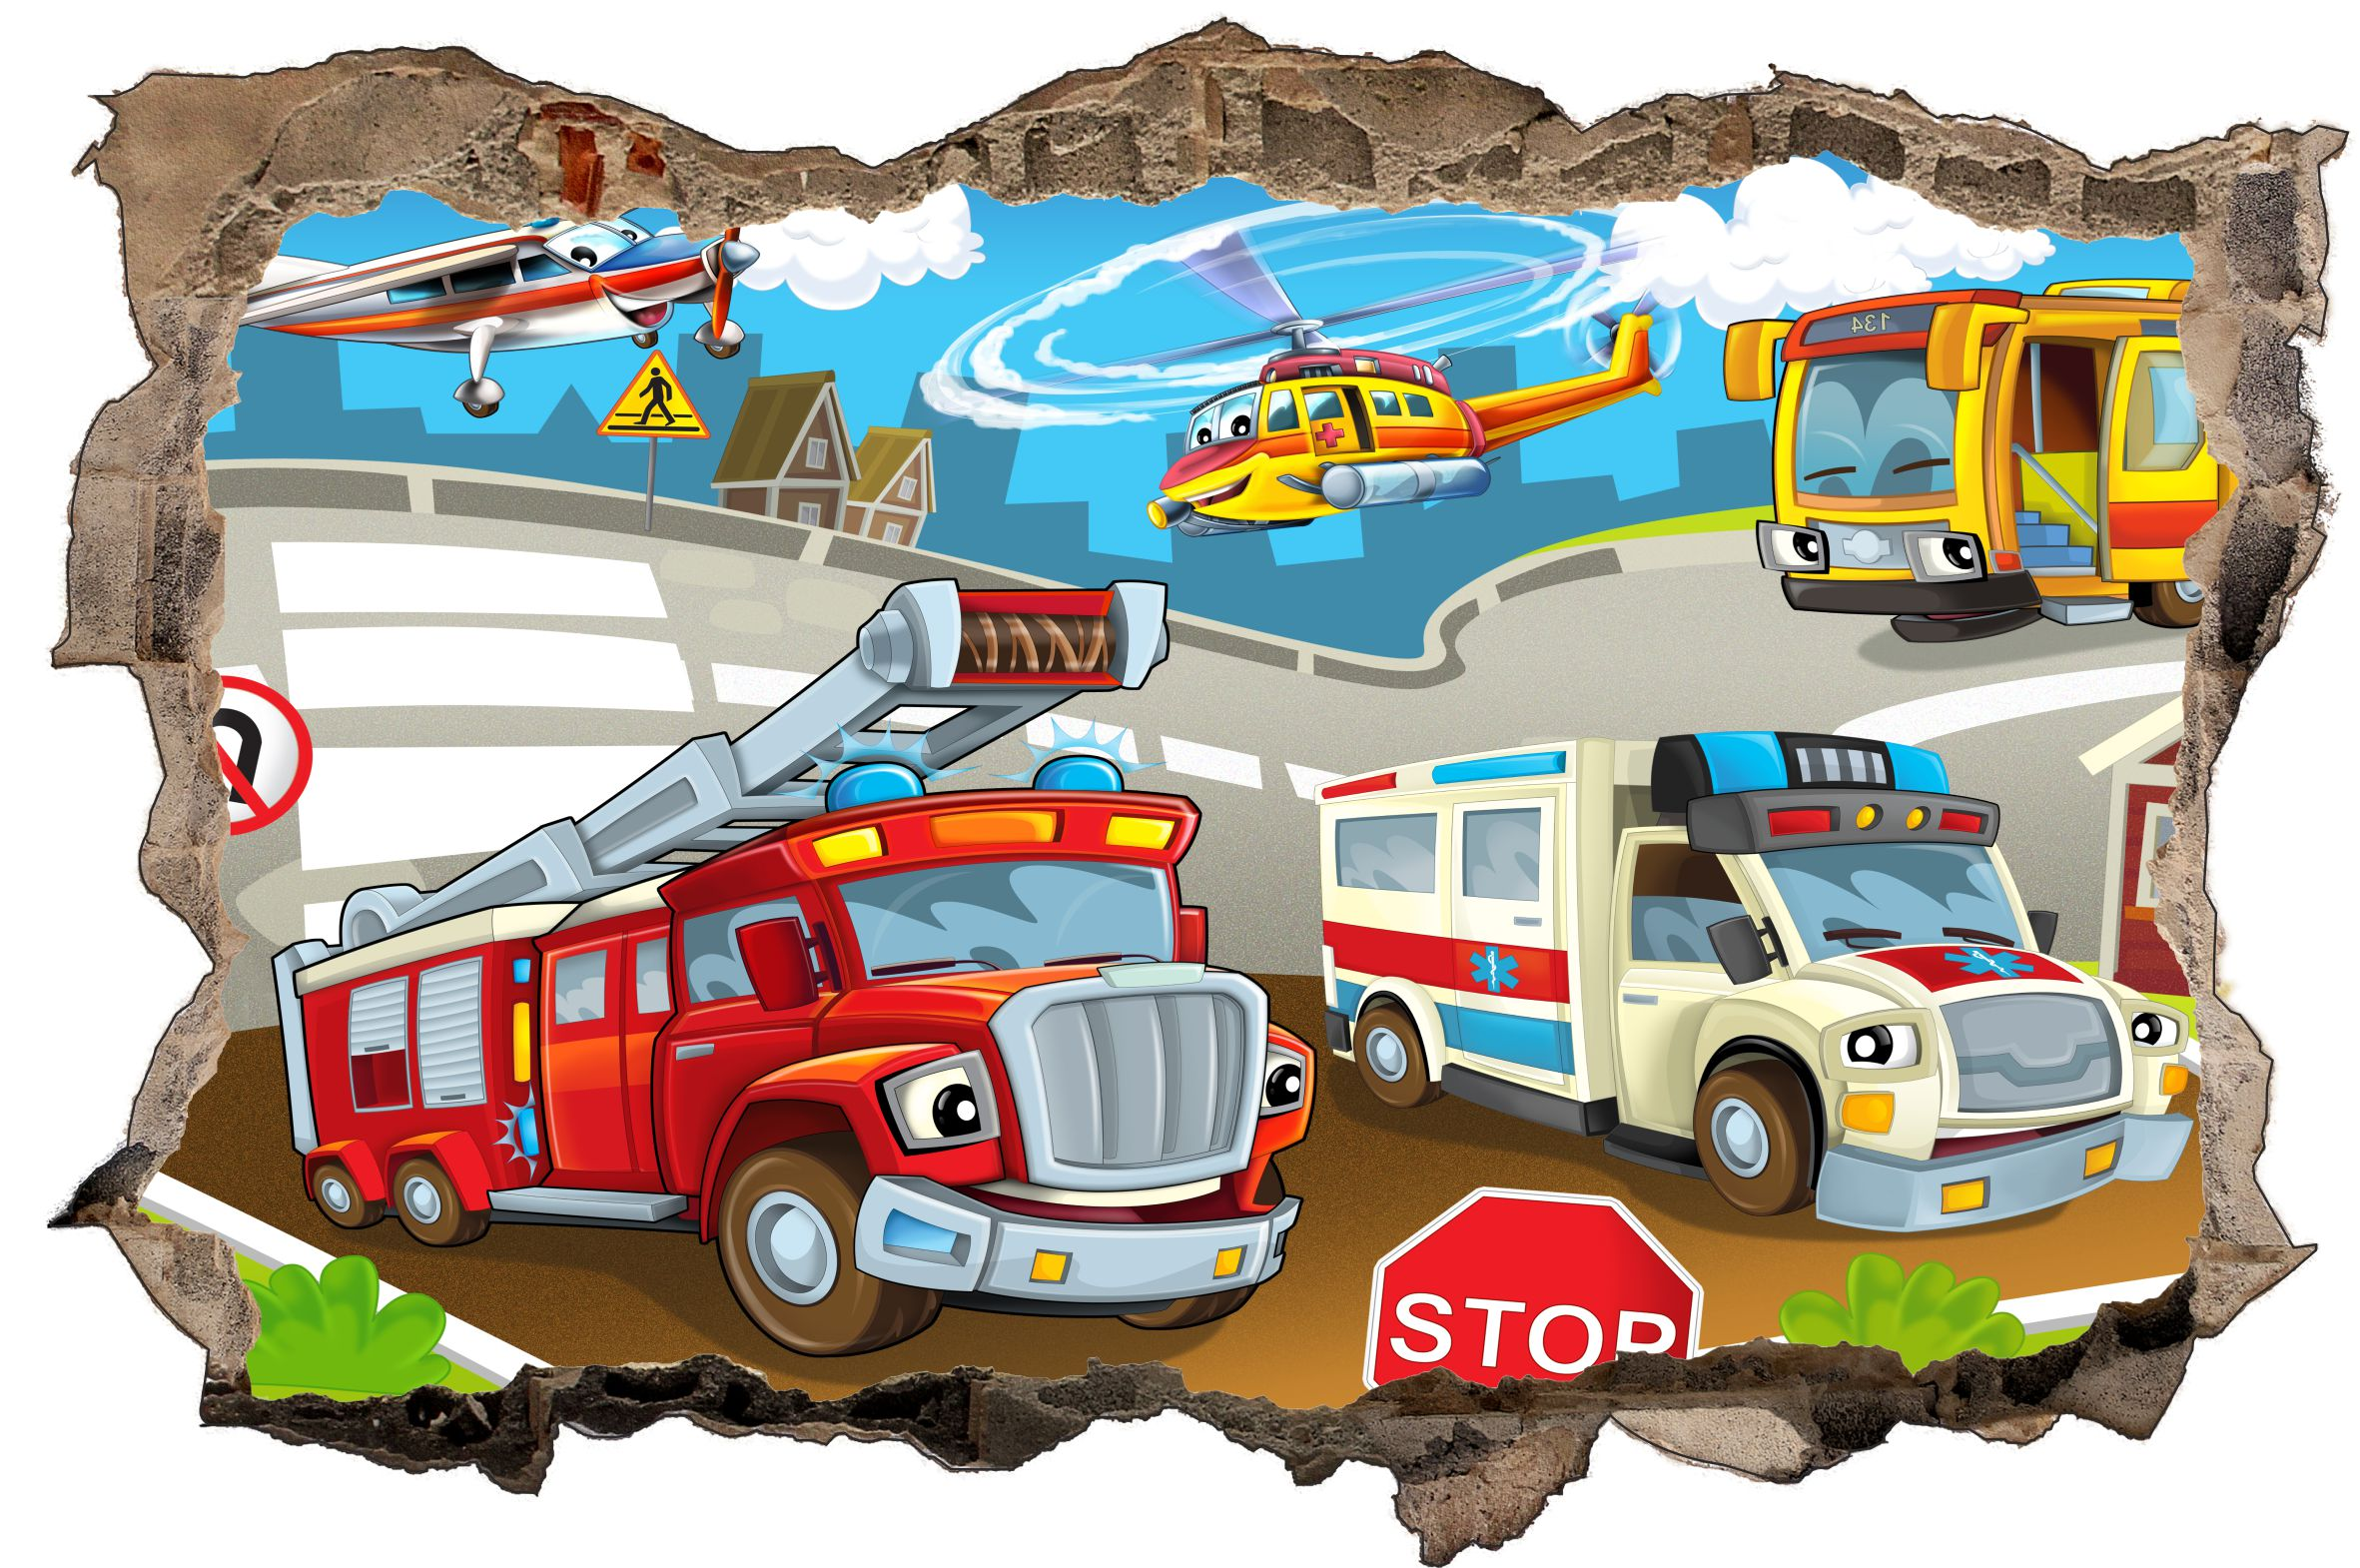 feuerwehr krankenwagen cartoon wandtattoo wandsticker. Black Bedroom Furniture Sets. Home Design Ideas